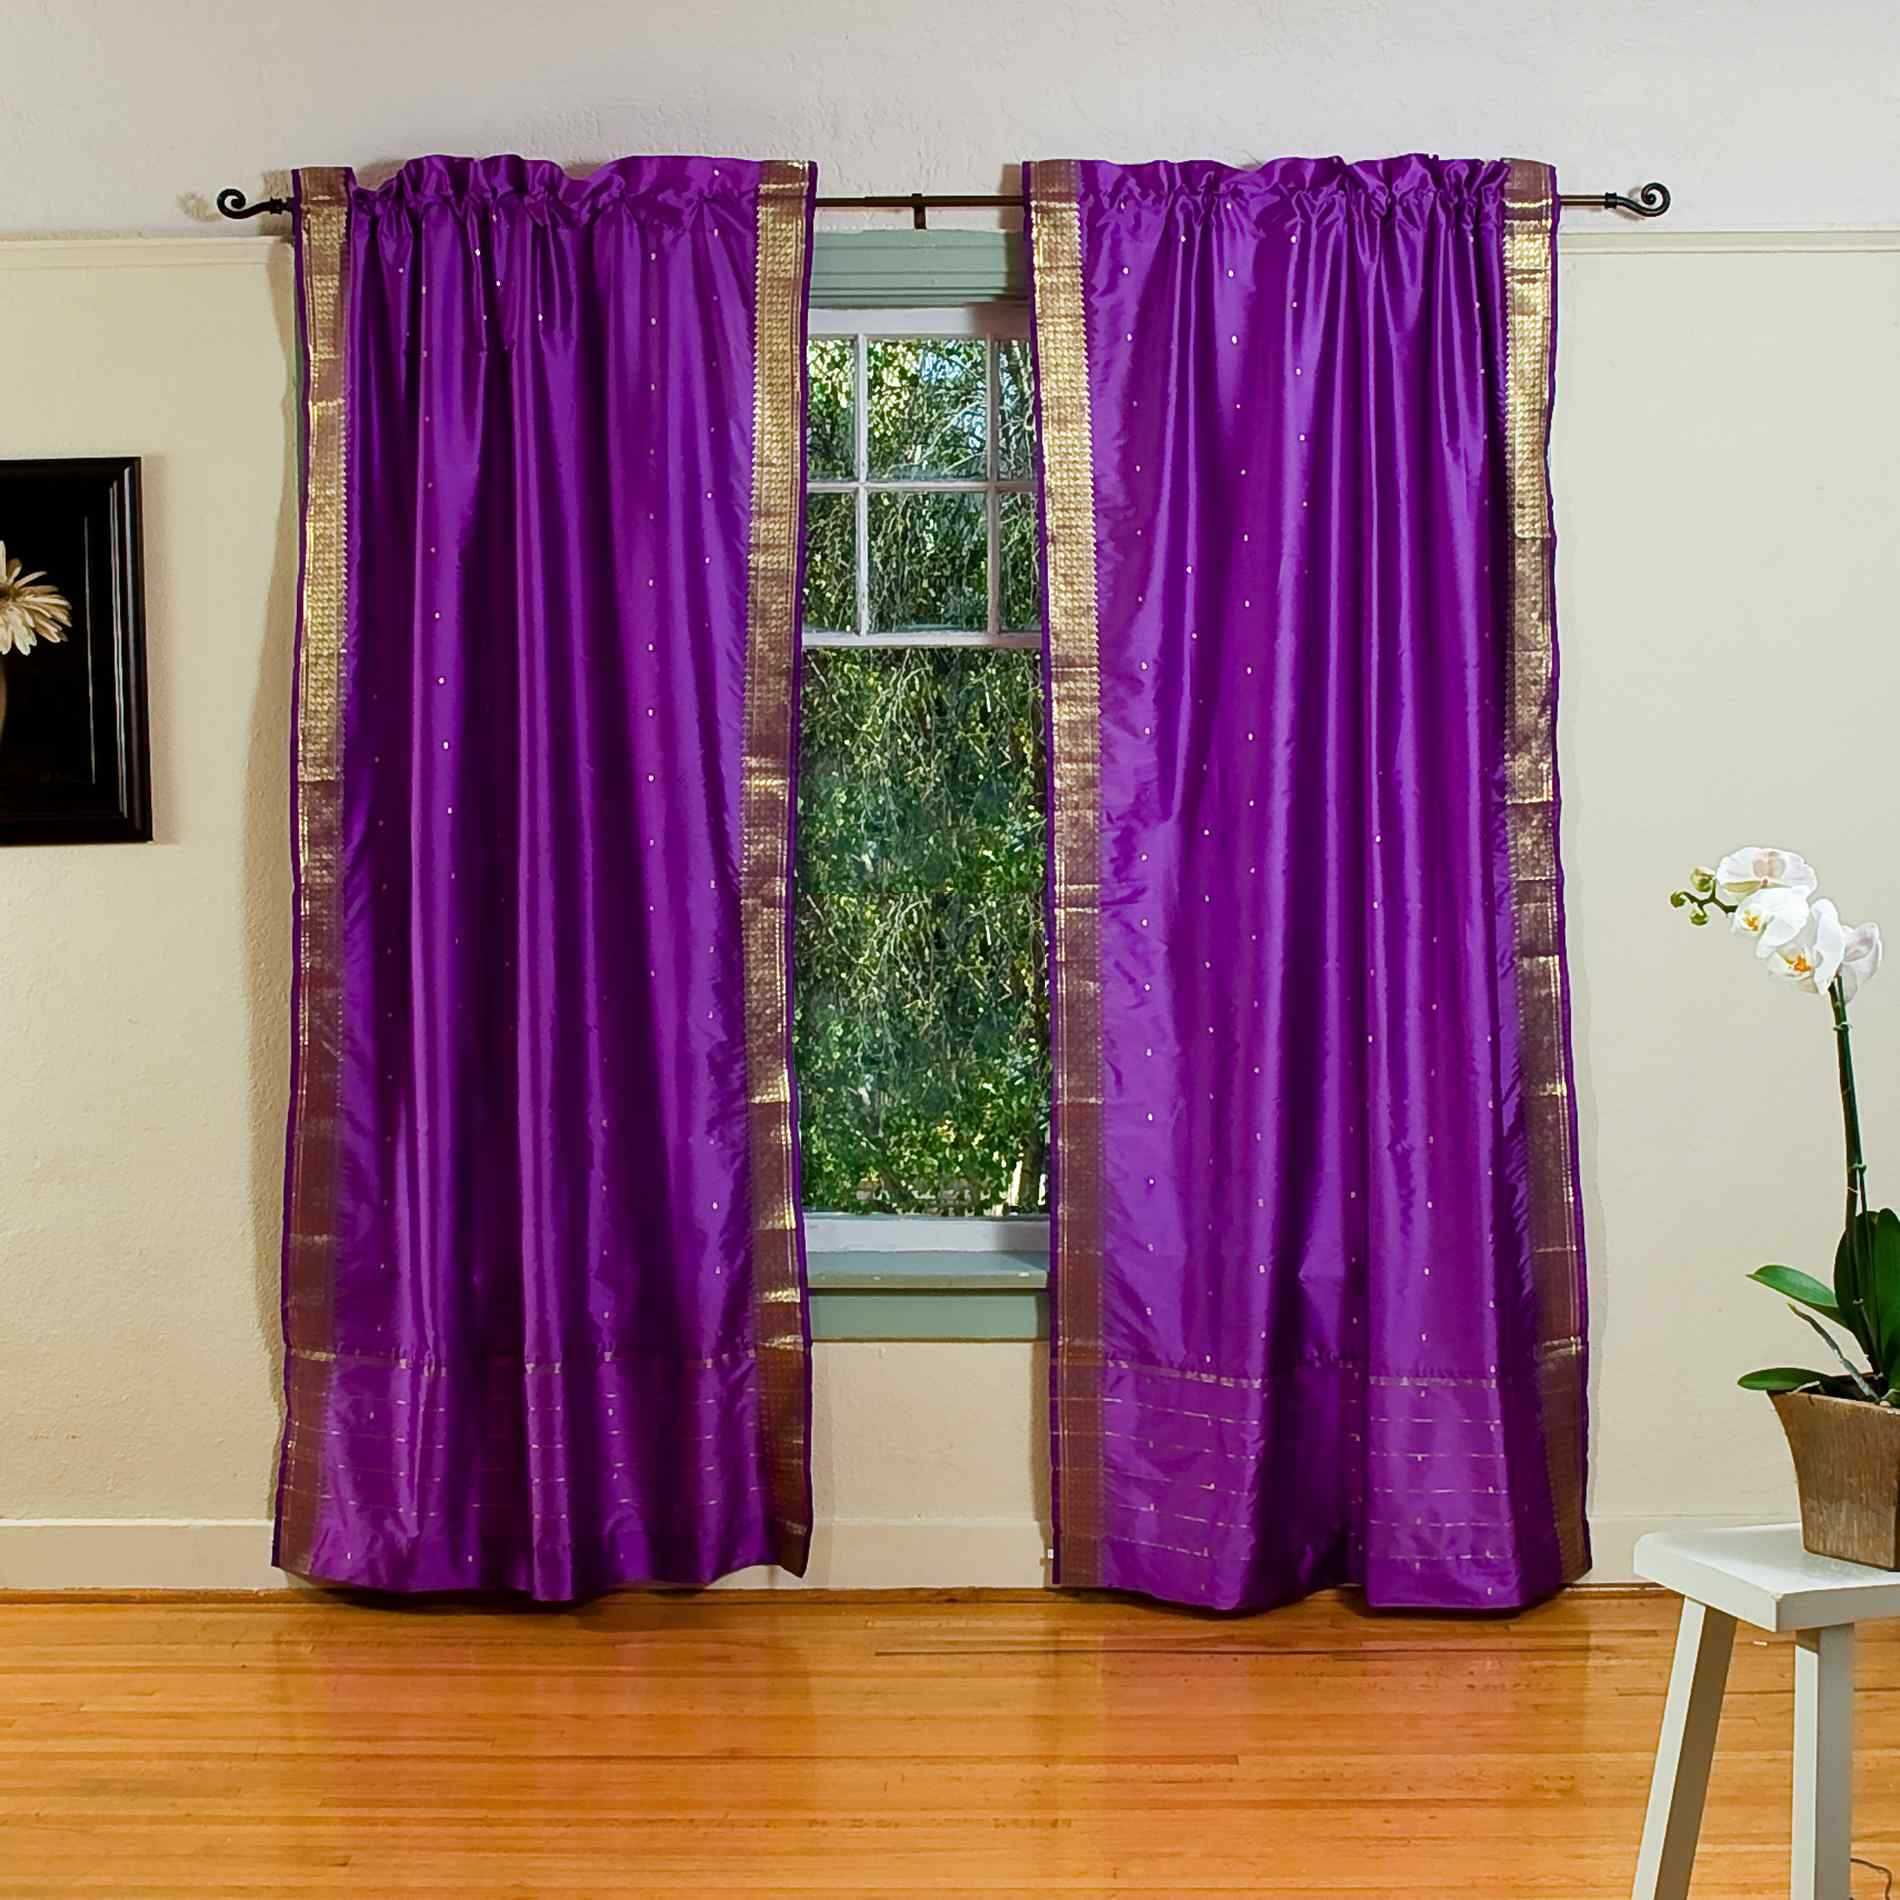 Drapes  Curtains  Purple  House  Home